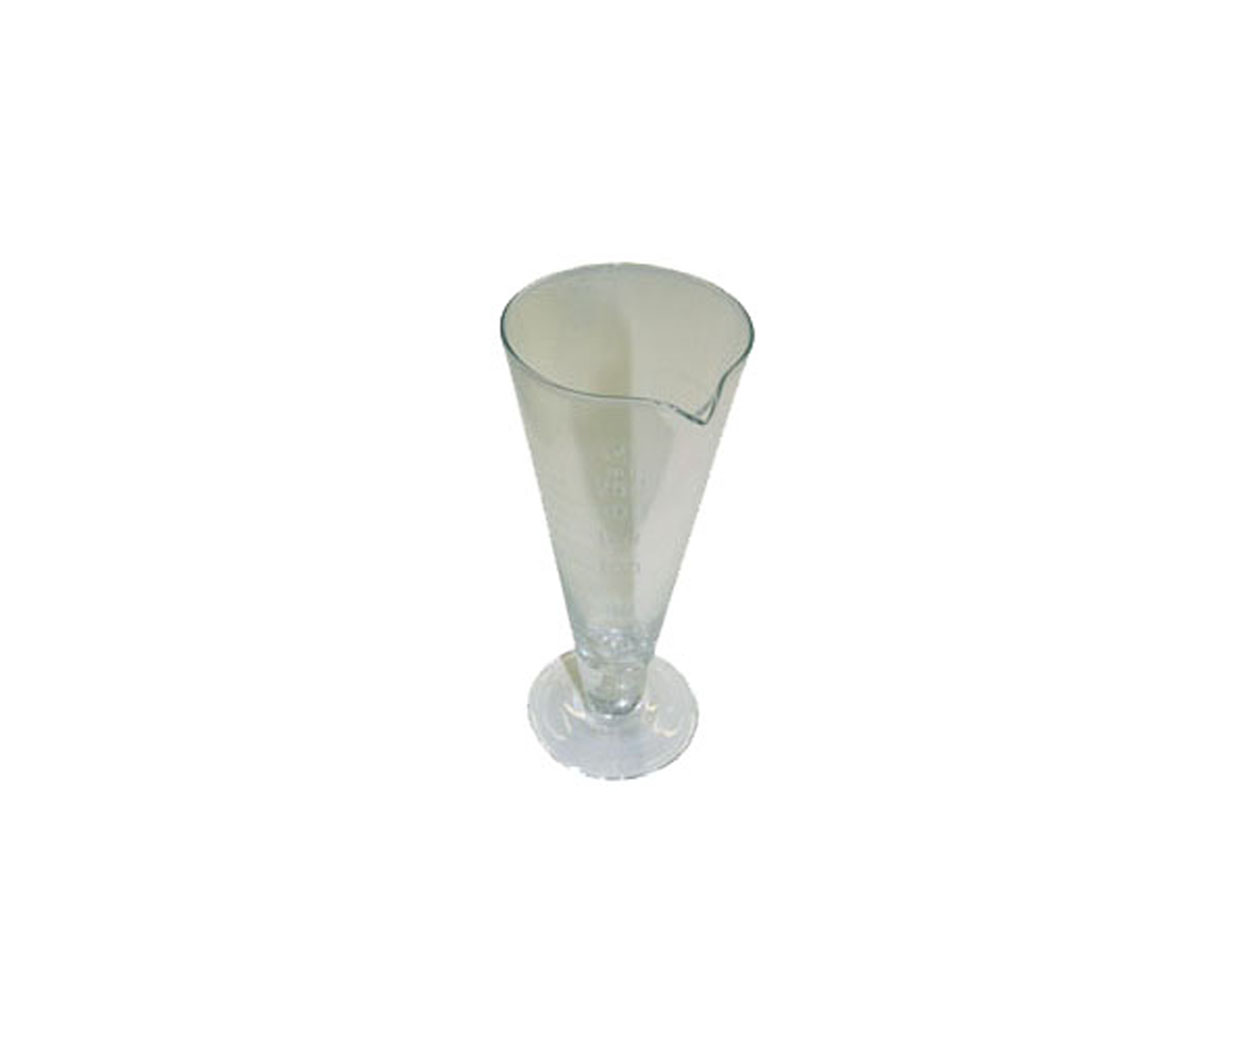 50ml Stamped Conical Measure with 10 Graduations